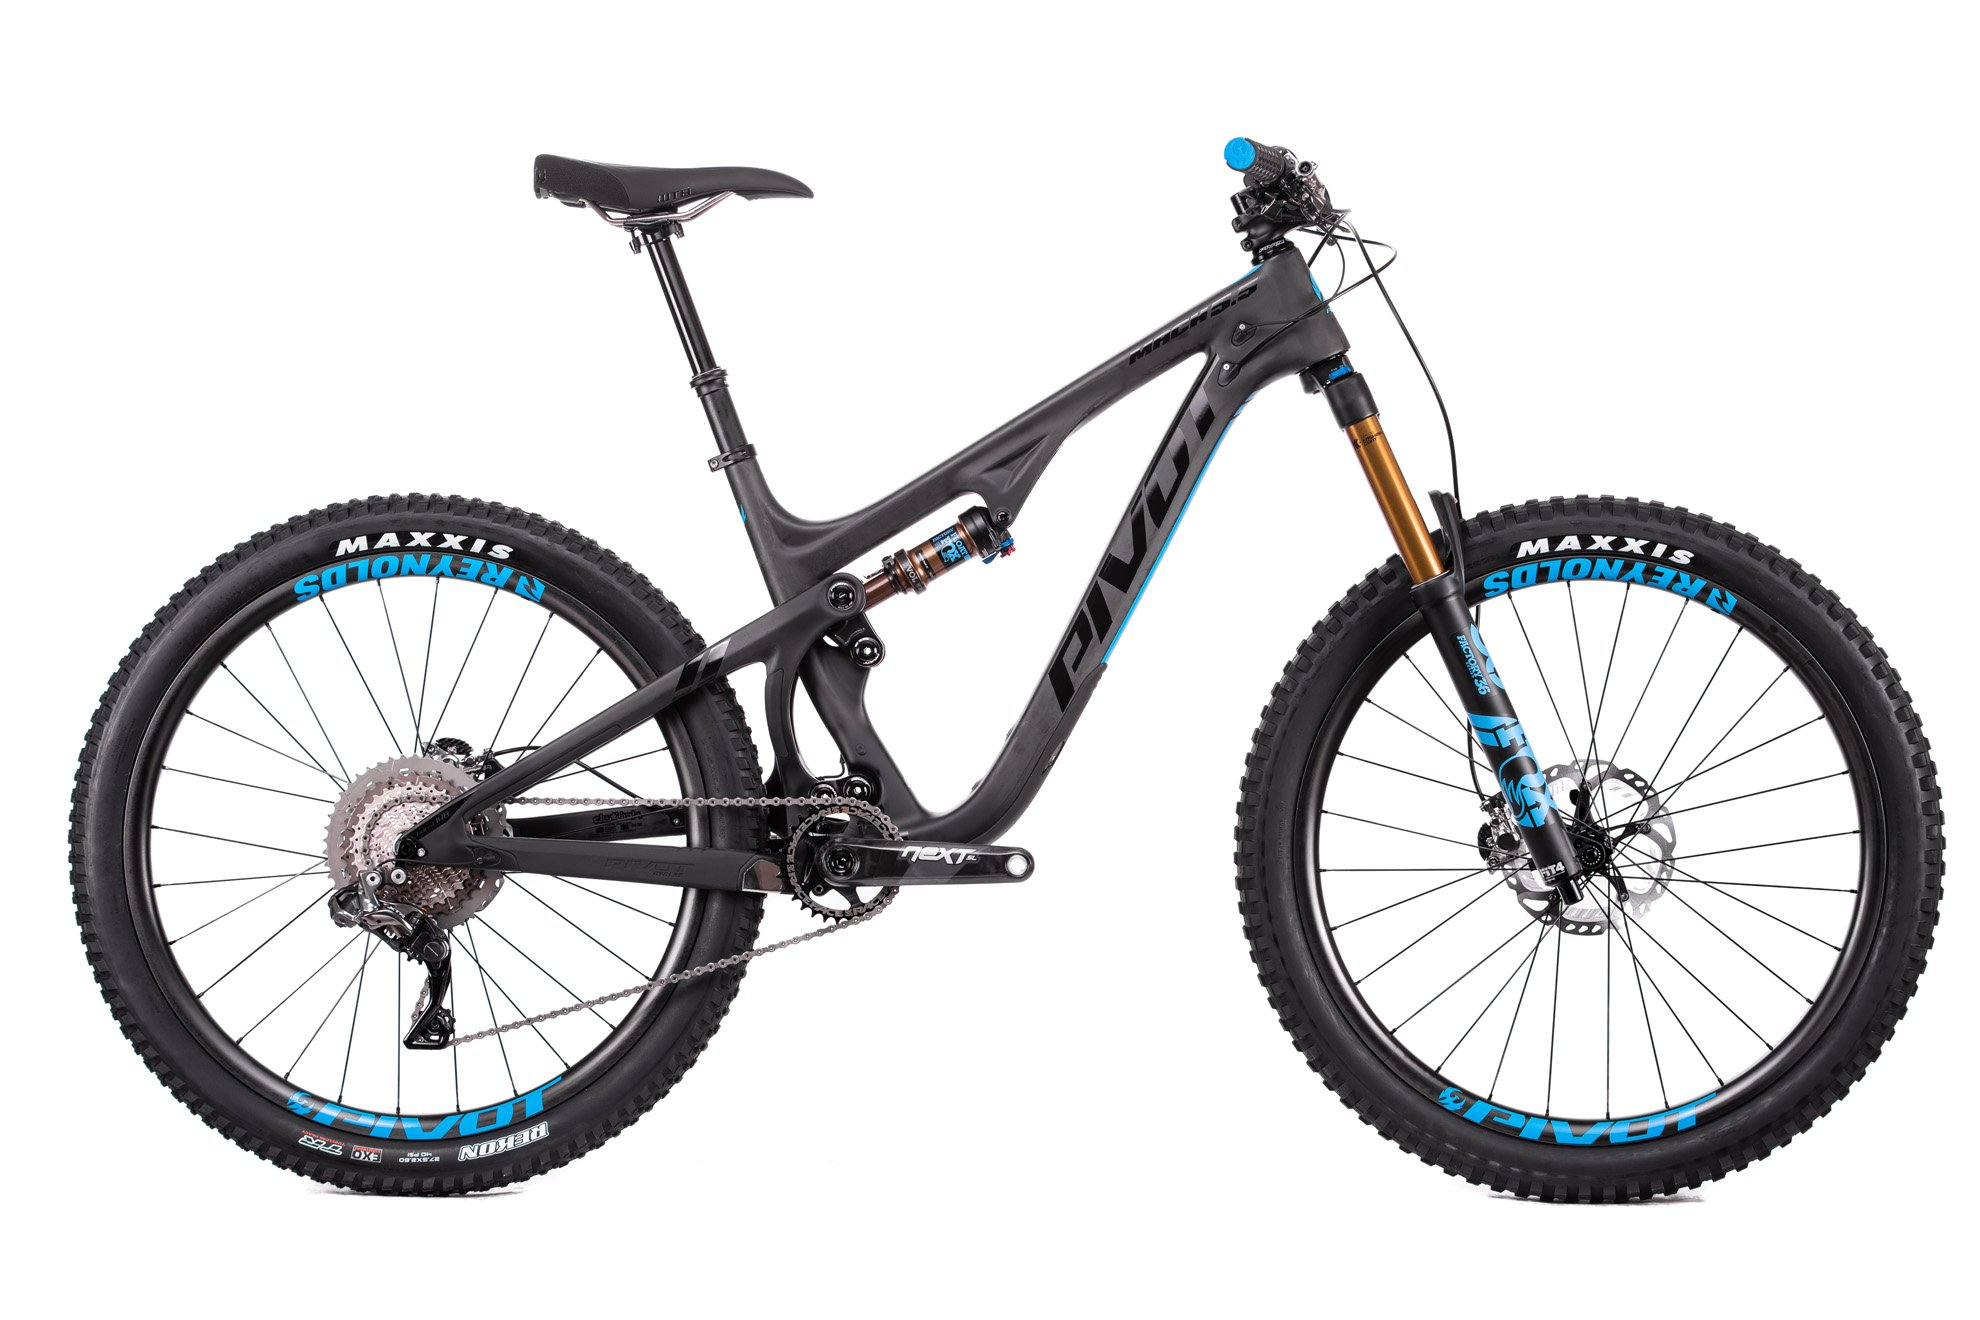 2017_MACH_55_CARBON_275_TEAM_XTR_DI2_1X_BLACK.jpg